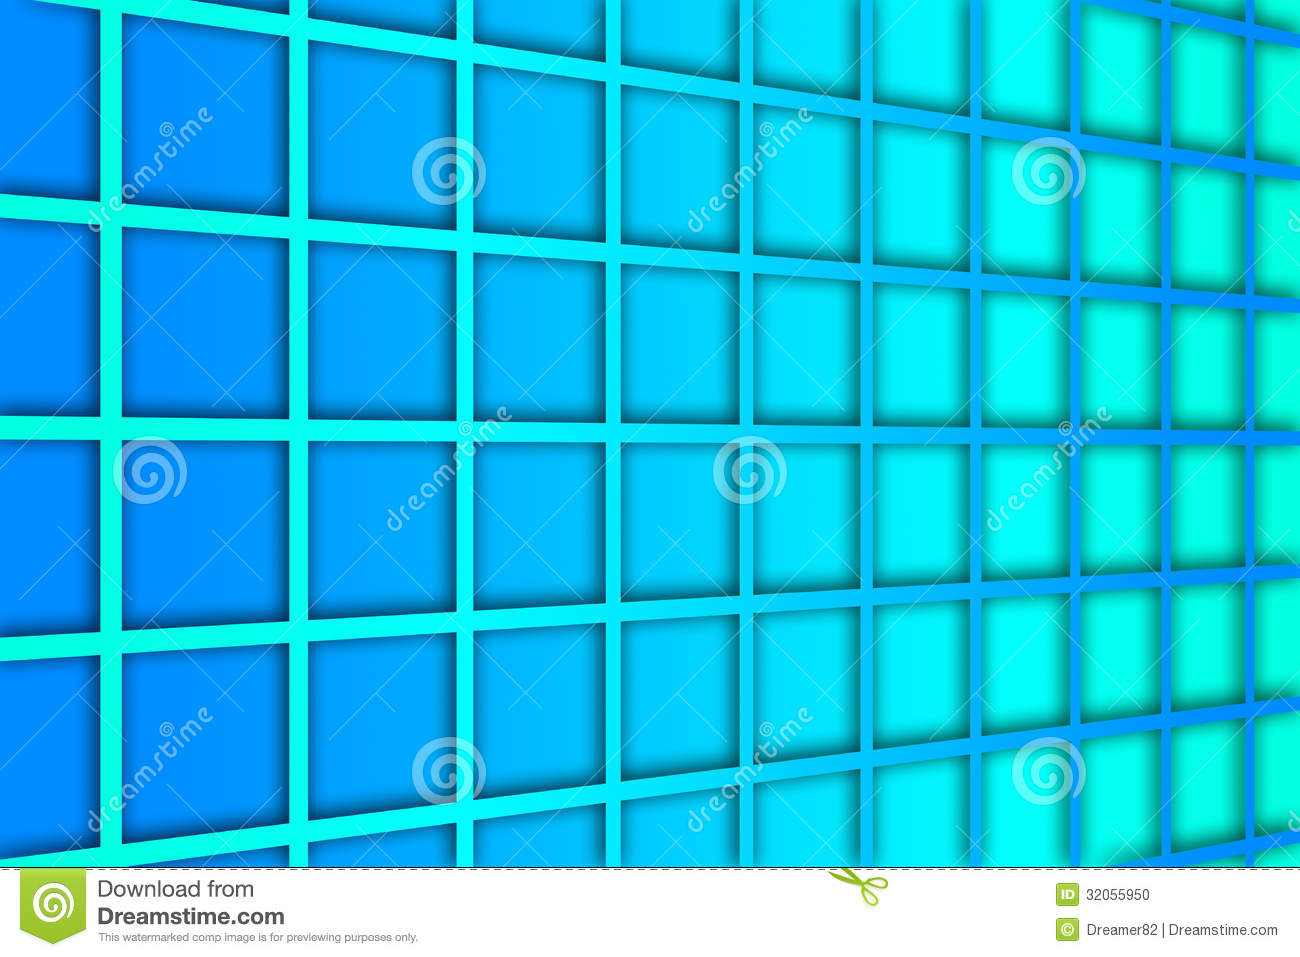 Blue square pattern background - photo#12